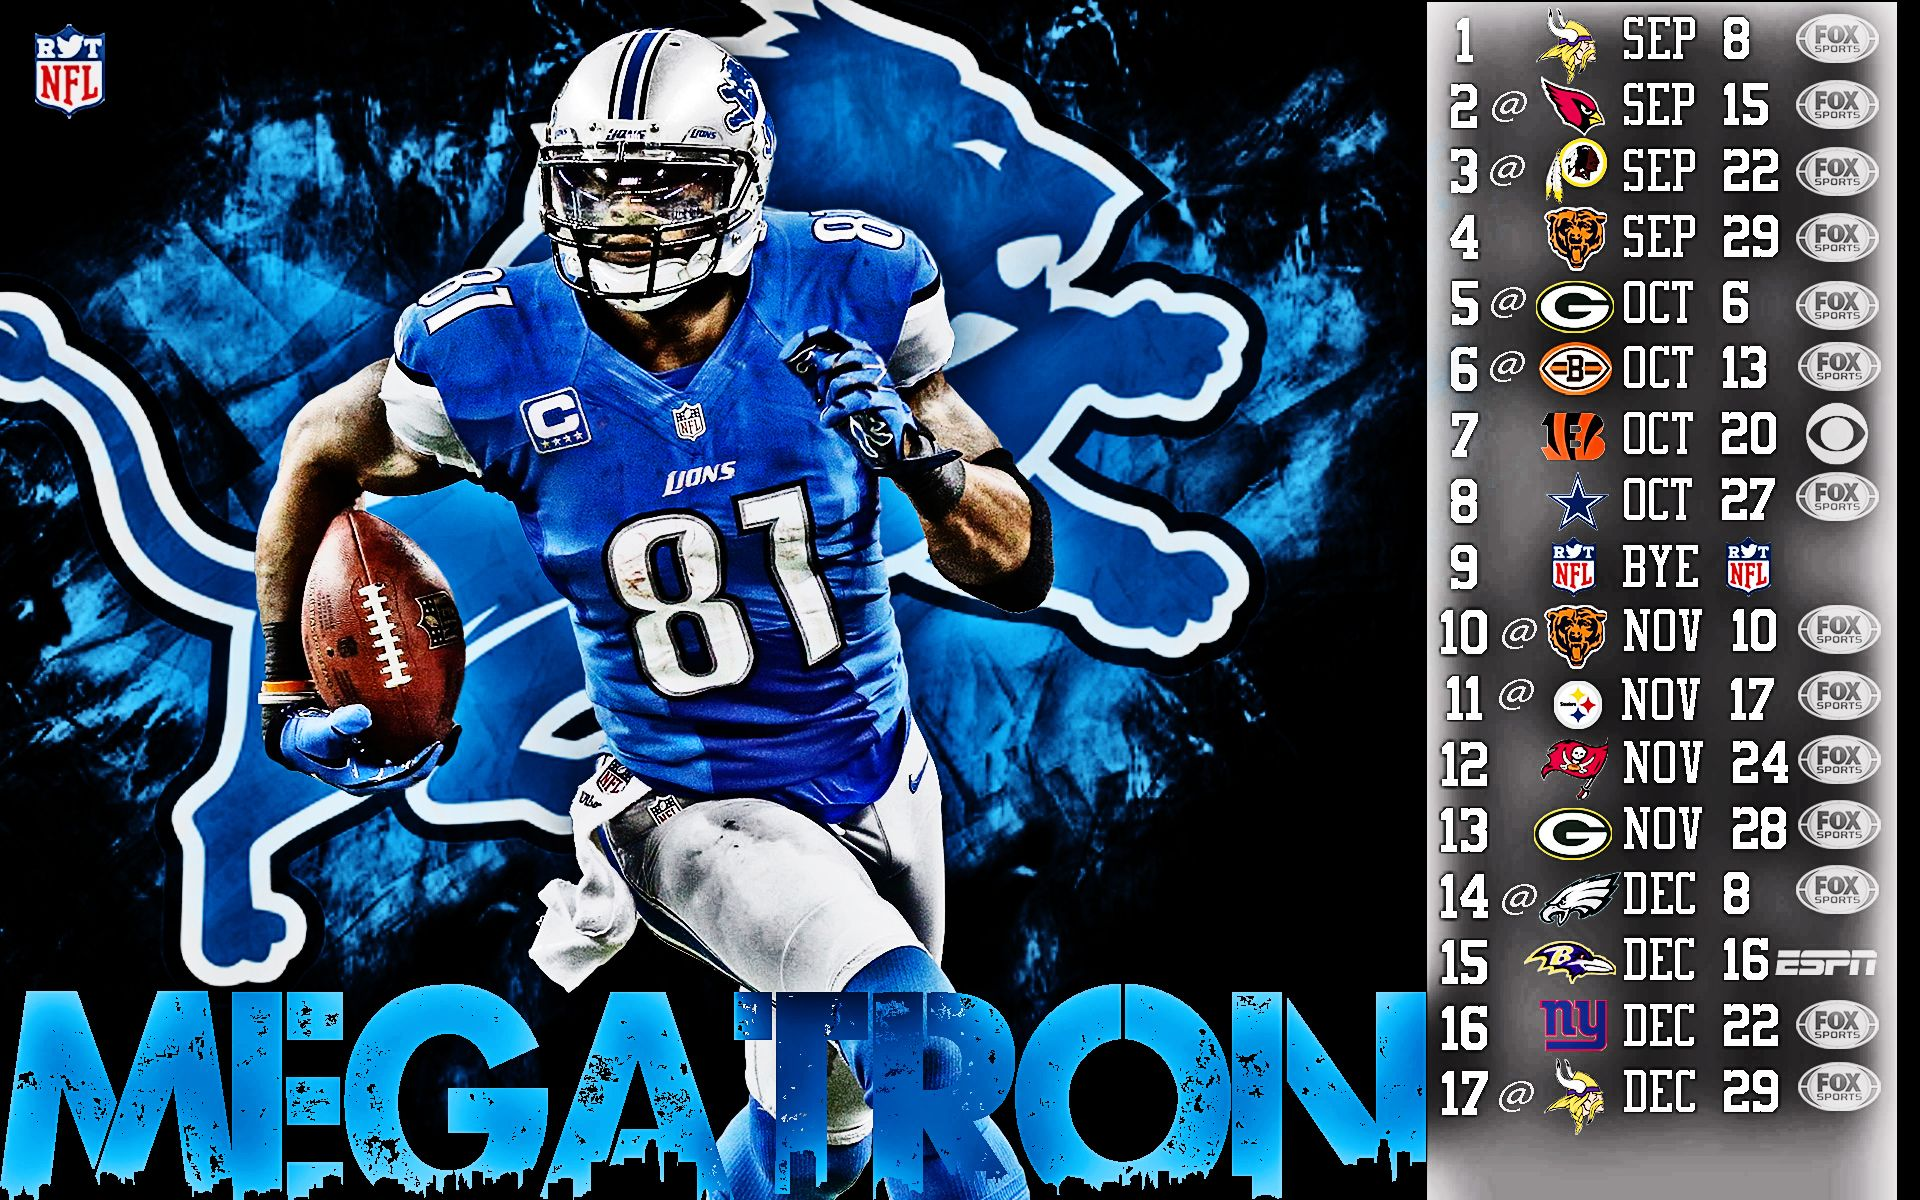 Pin By Nothing On Detroit Lions In 2020 Detroit Lions Wallpaper Detroit Lions Nfl Football Wallpaper